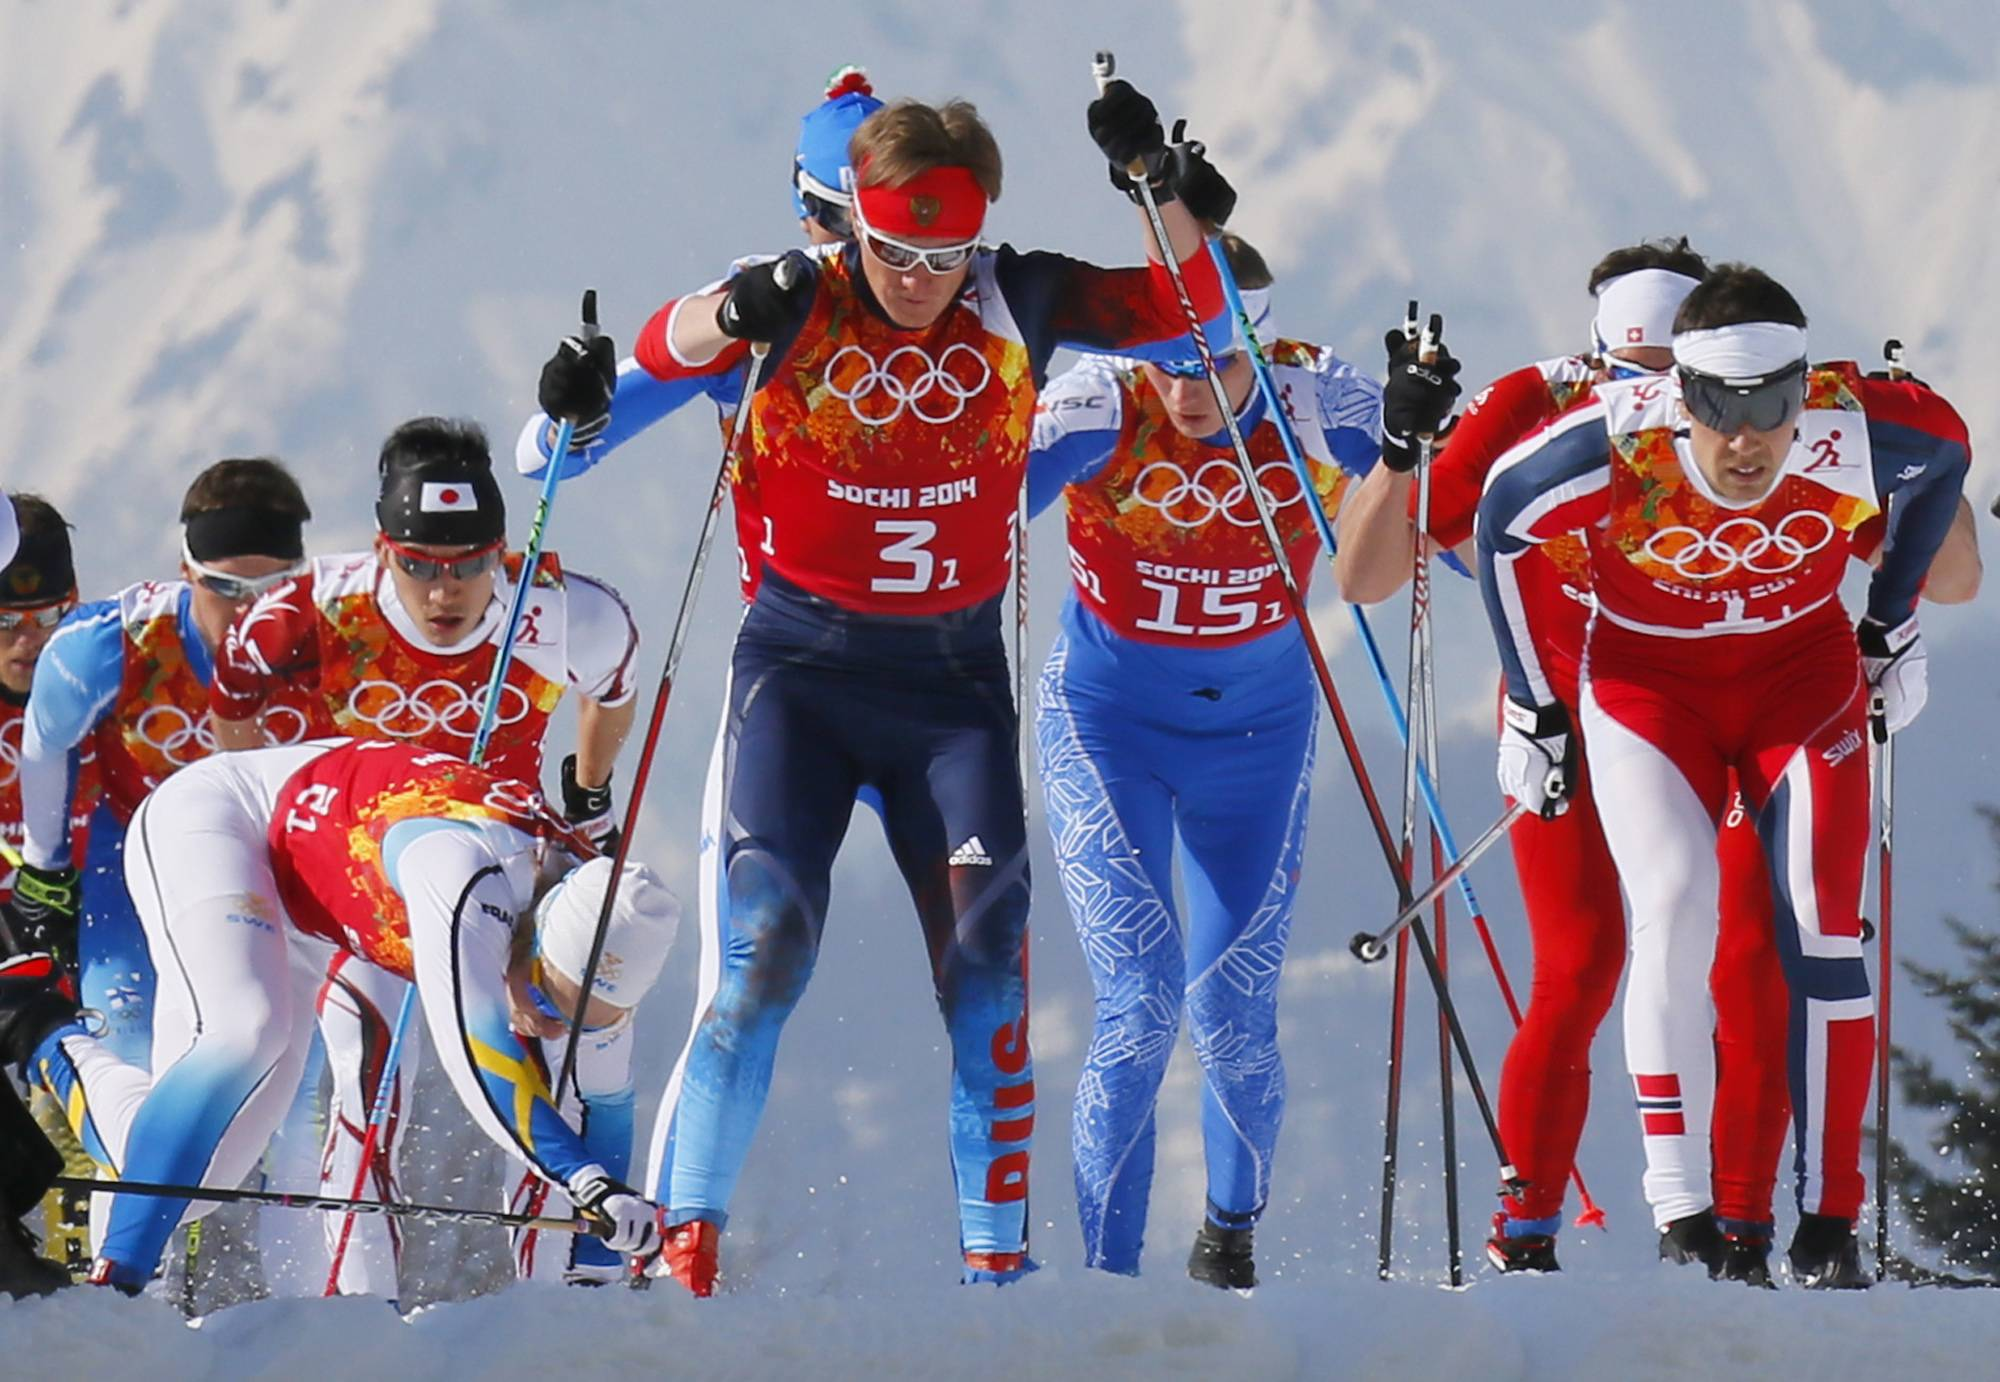 Sweden's Lars Nelson, left, falls during the men's 4x10K cross-country relay at the 2014 Winter Olympics, Sunday, Feb. 16, 2014, in Krasnaya Polyana, Russia.